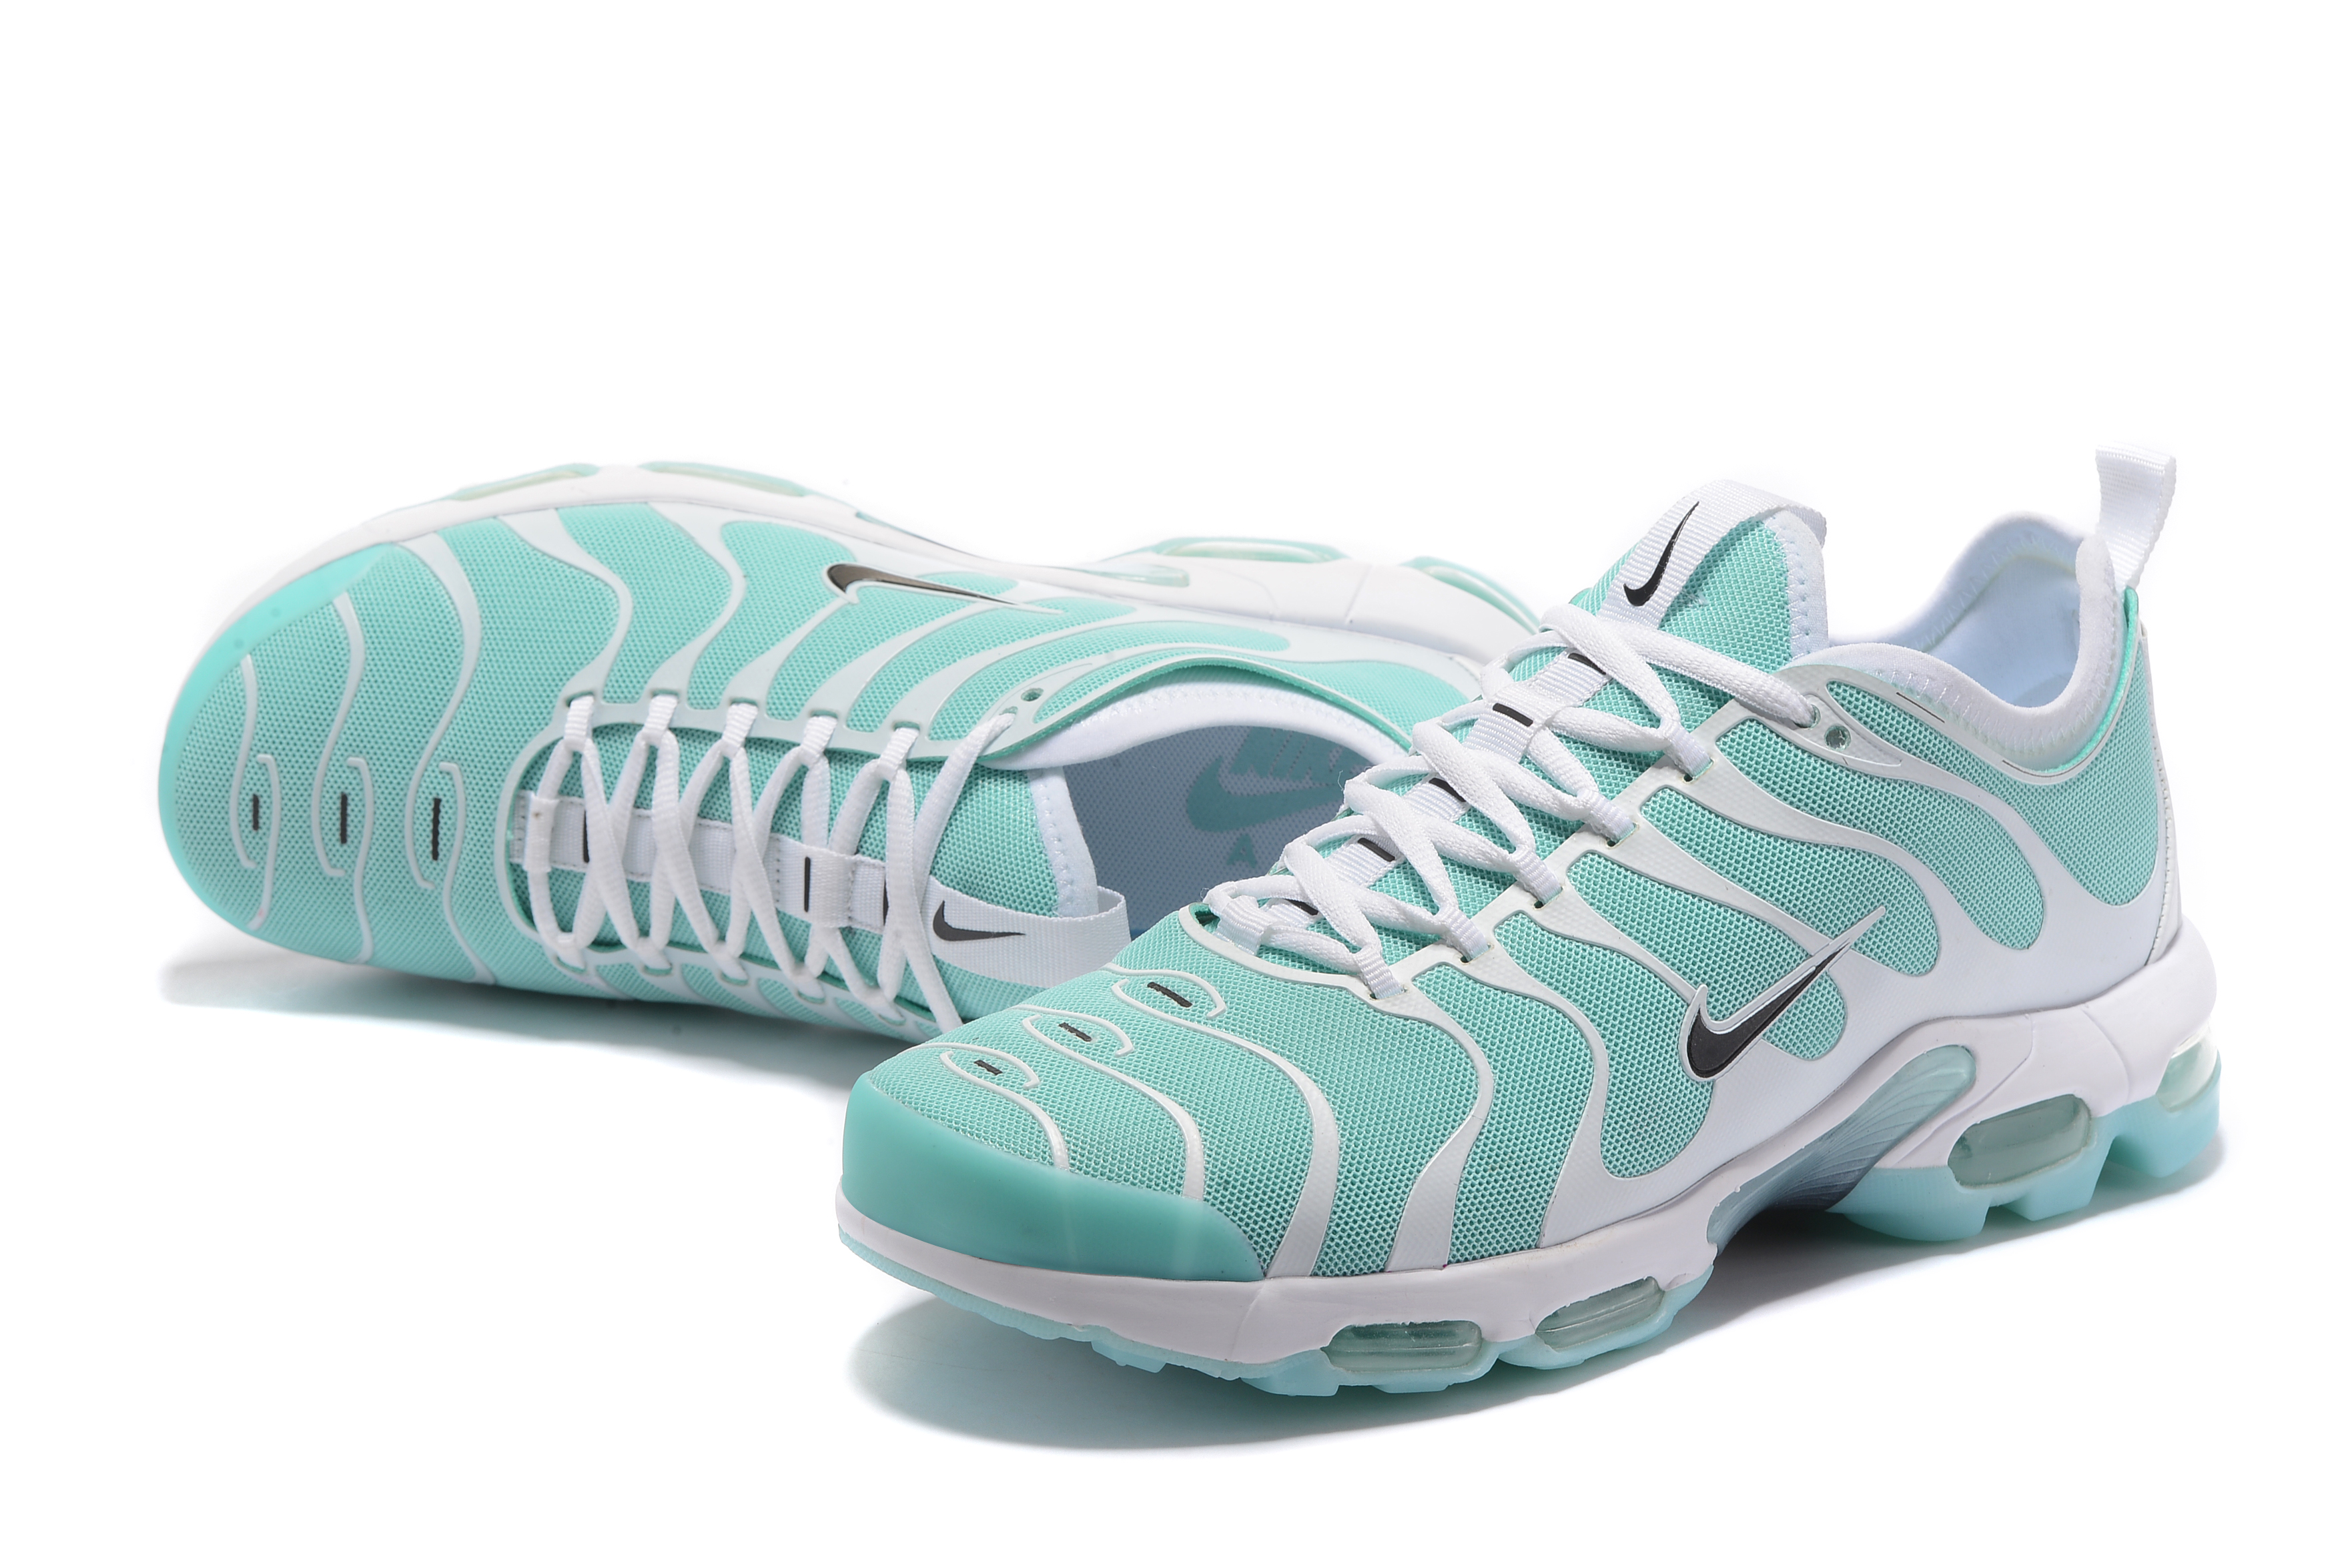 Nike Air Max Plus TN Gint Green White For Women